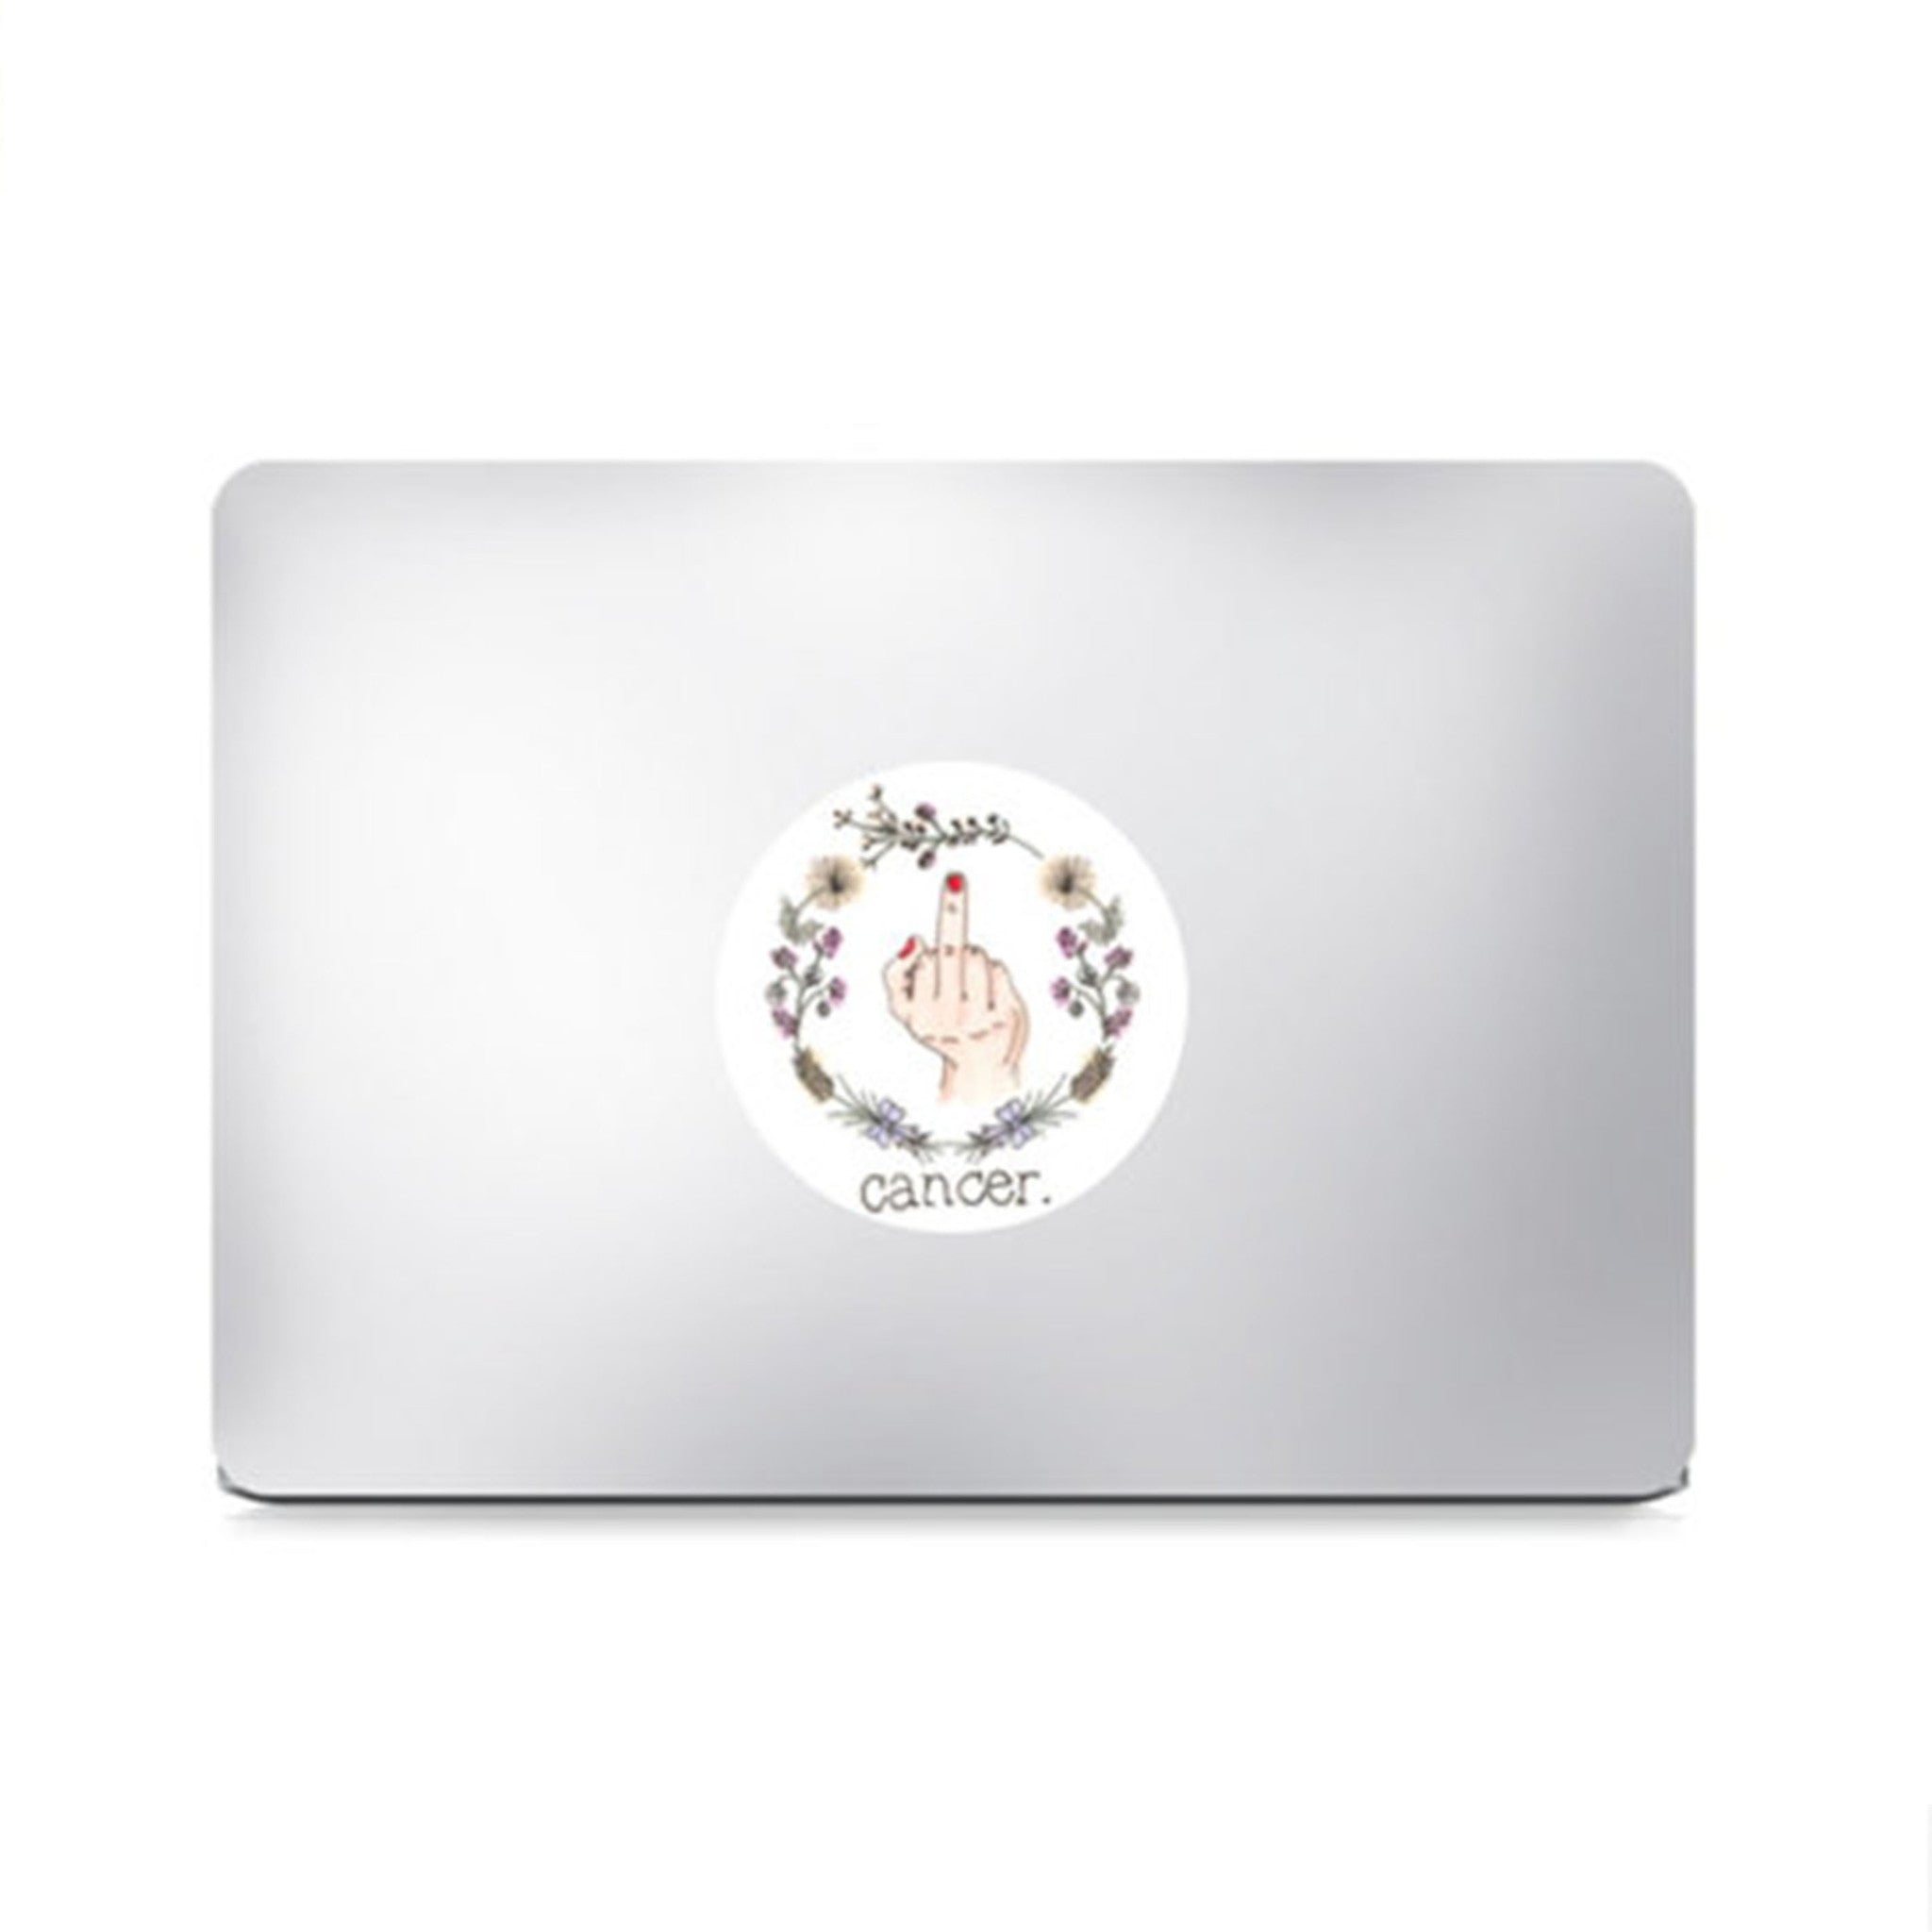 F Cancer Survivor Laptop or Sticker Decal